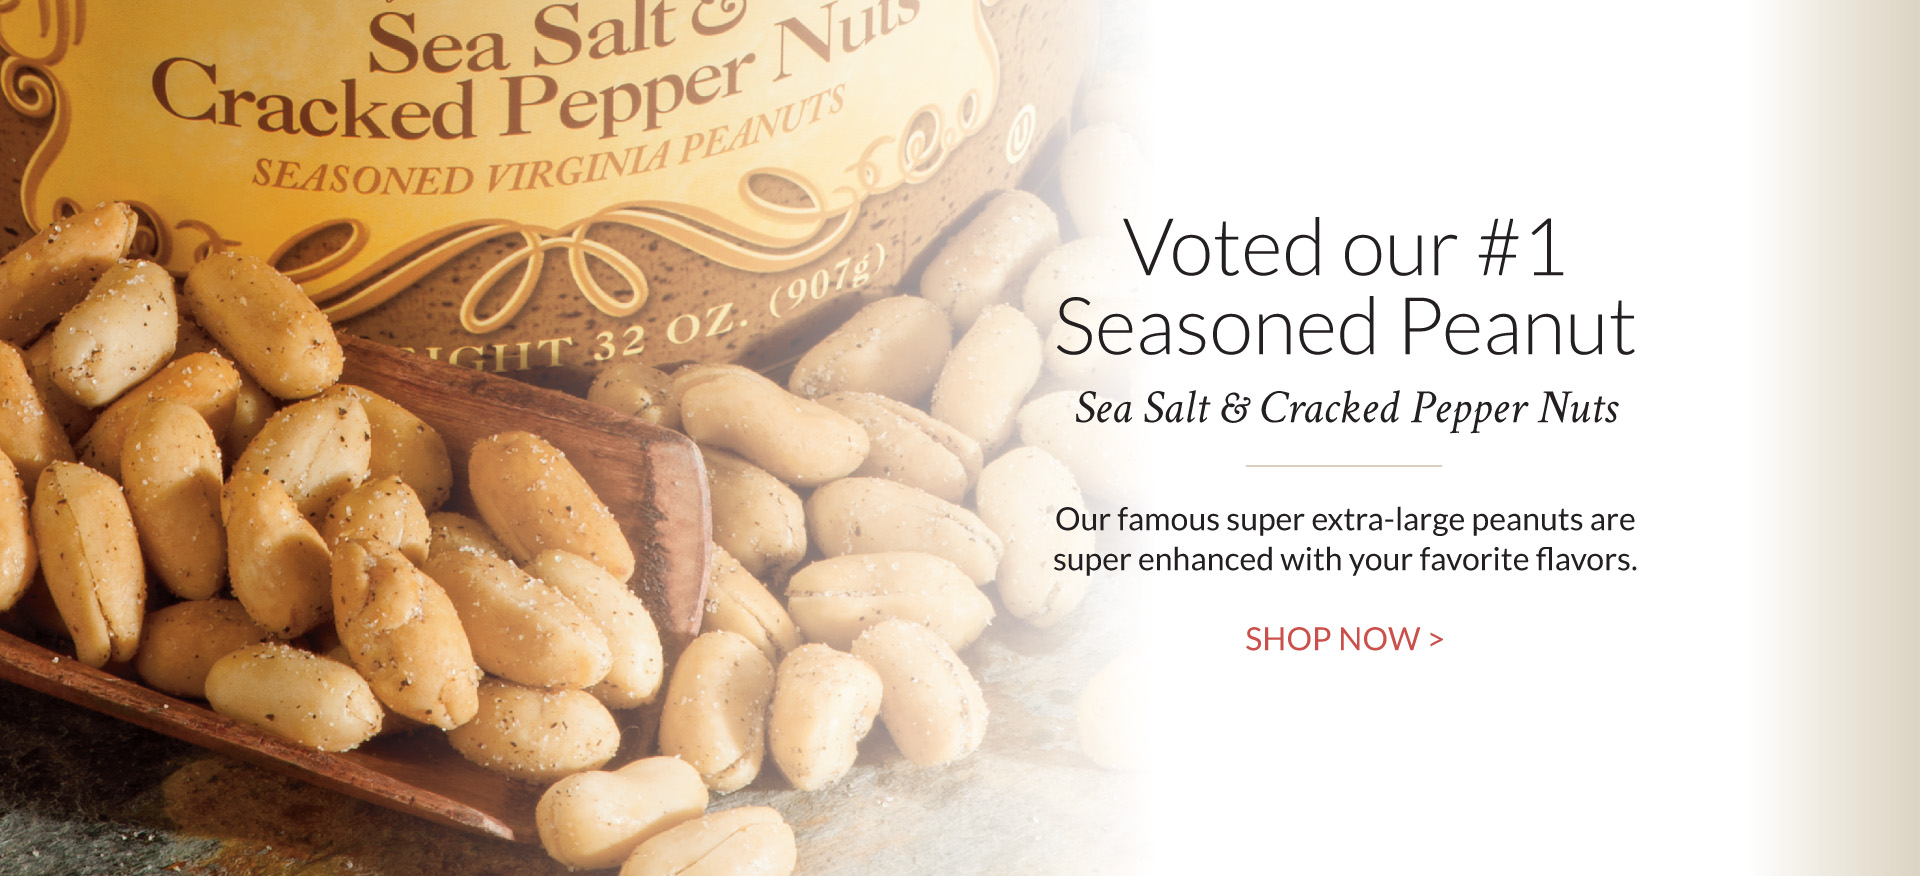 Salt and Pepper Peanuts - The Peanut Shop of Williamsburg